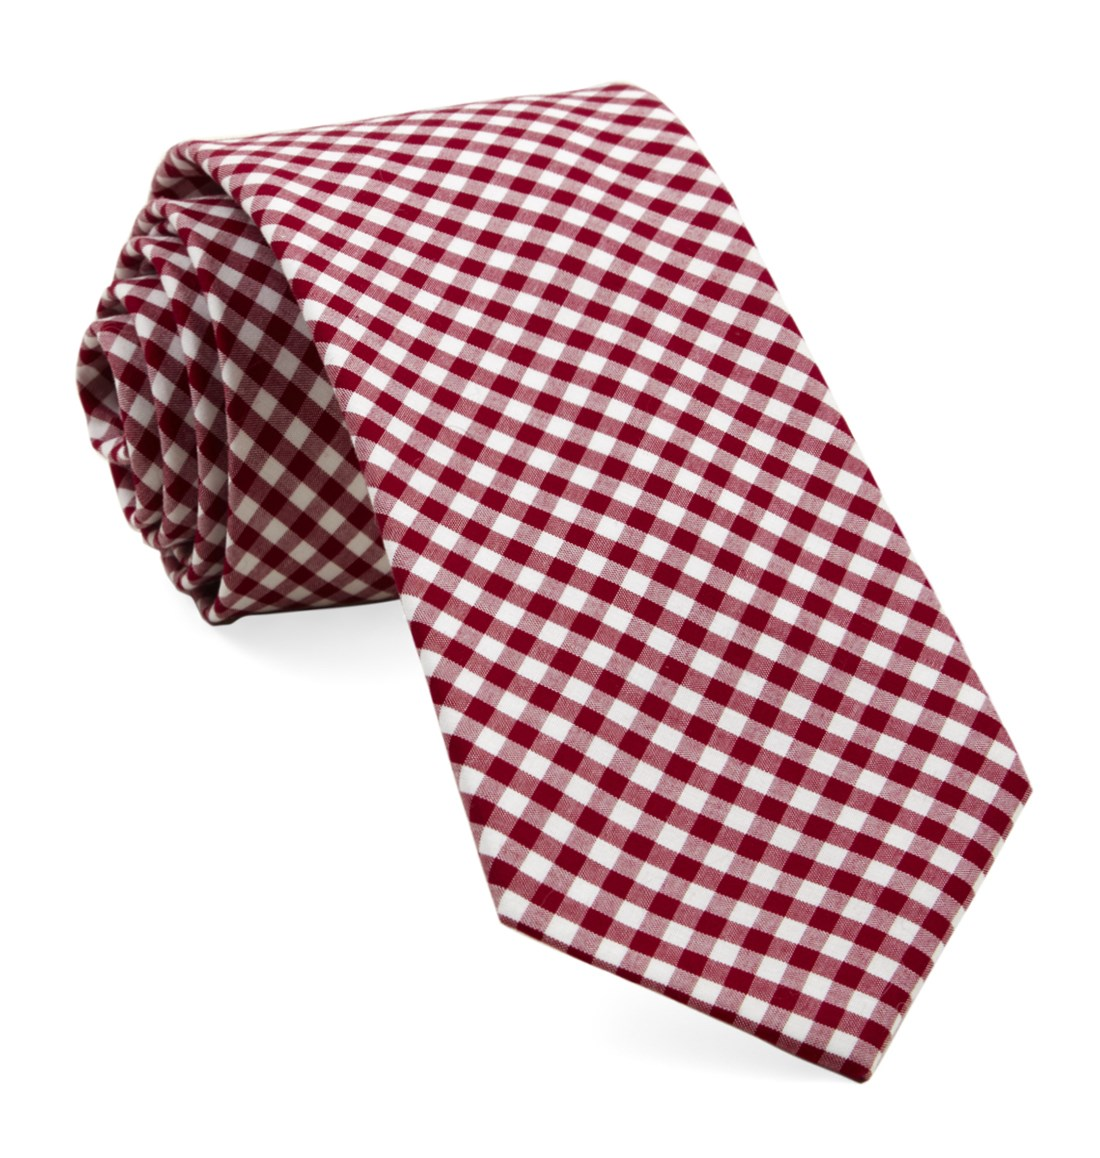 The Tie Bar 100/% Cotton Red Petite Gingham Pocket Square